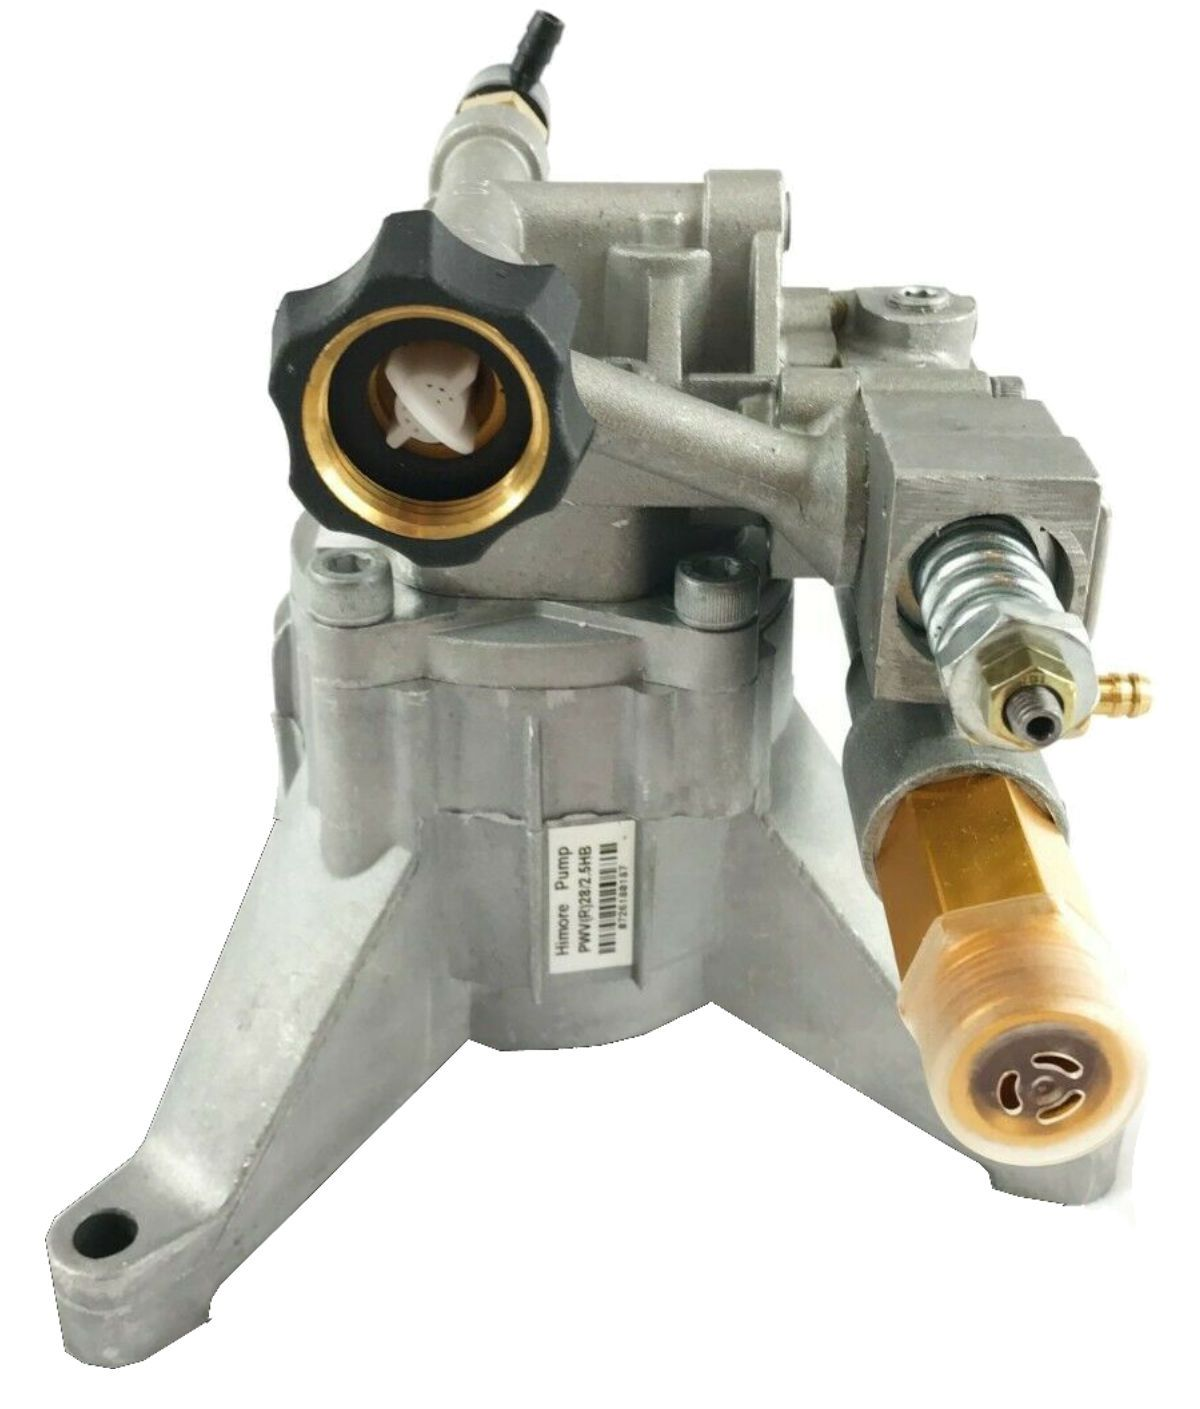 2700 PSI PRESSURE WASHER WATER PUMP Briggs & Stratton Snapper 1811 1811-0 - AE-Power